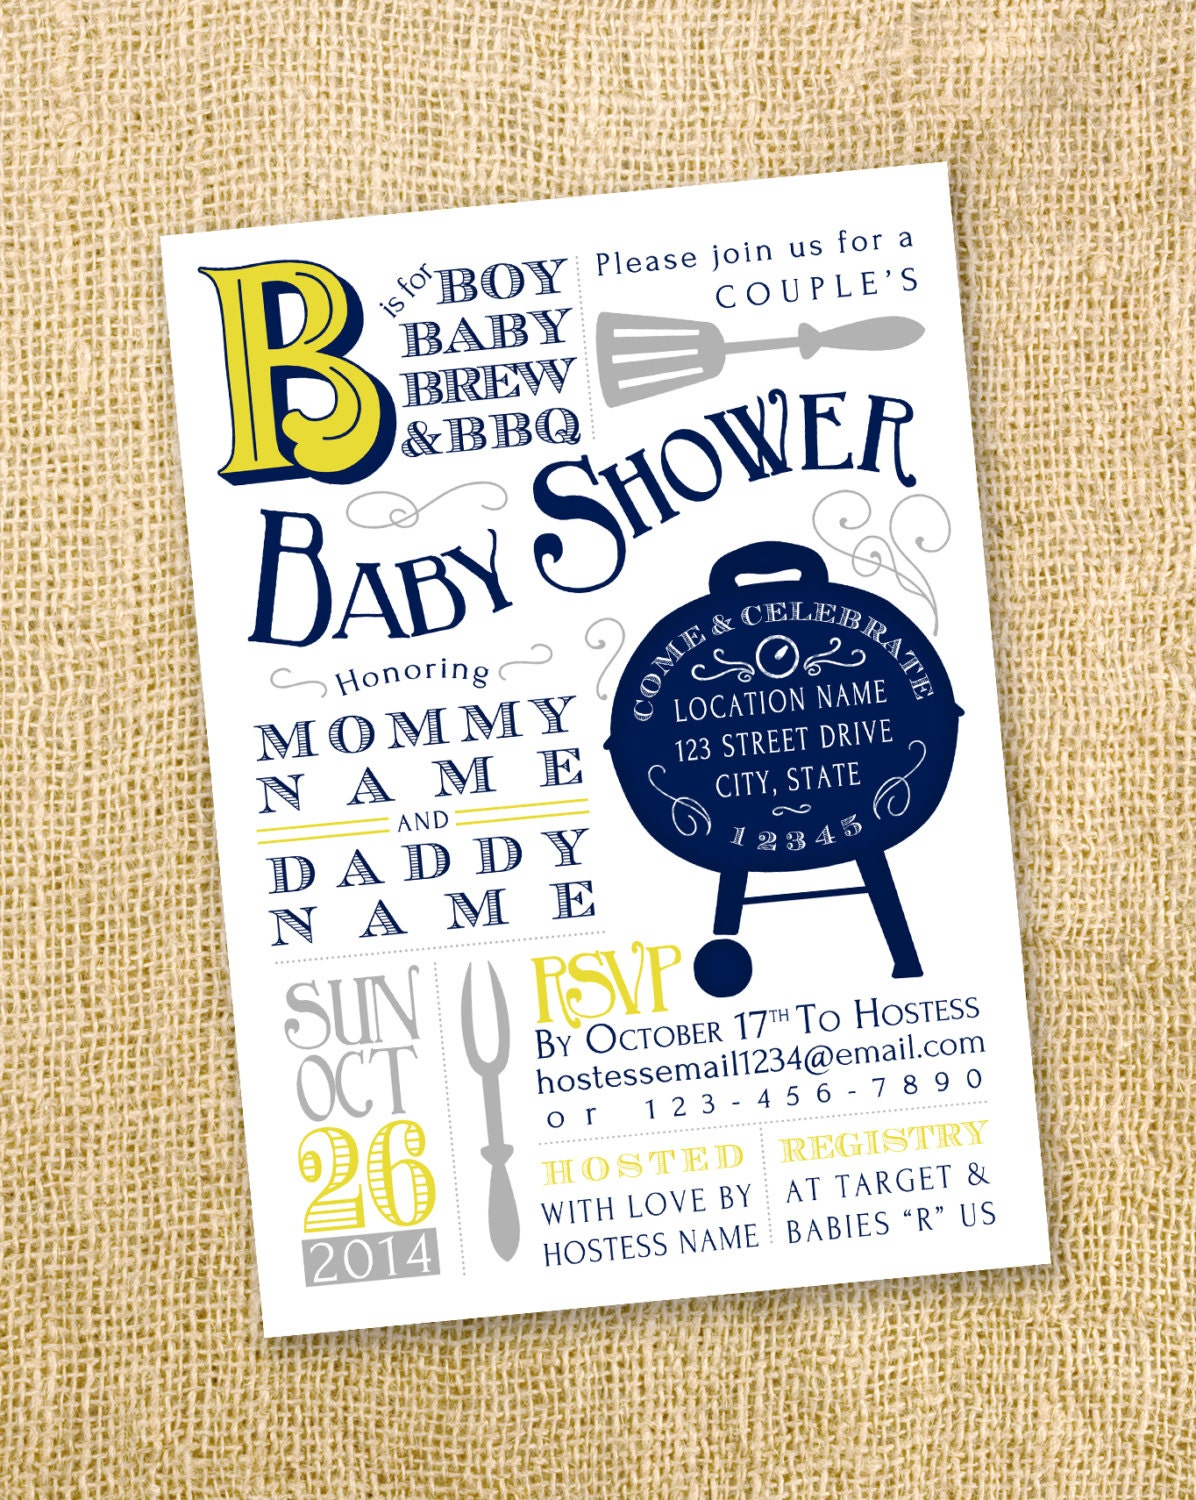 bar b que vintage baby shower invitation by gretchee on etsy